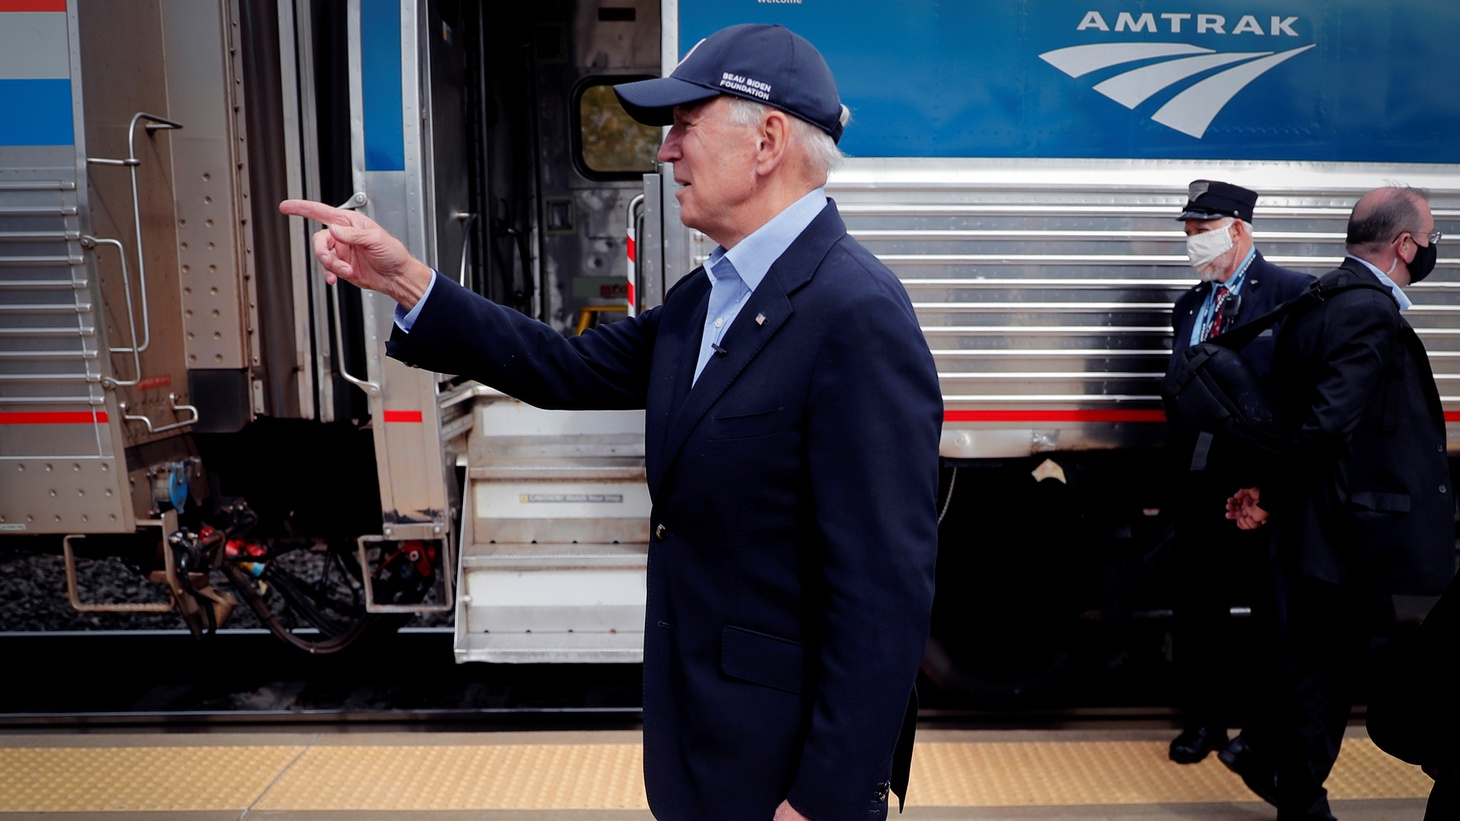 U.S. Democratic presidential candidate and former Vice President Joe Biden greets supporters after arriving on an Amtrak train for a campaign stop in Alliance, Ohio, U.S., September 30, 2020.